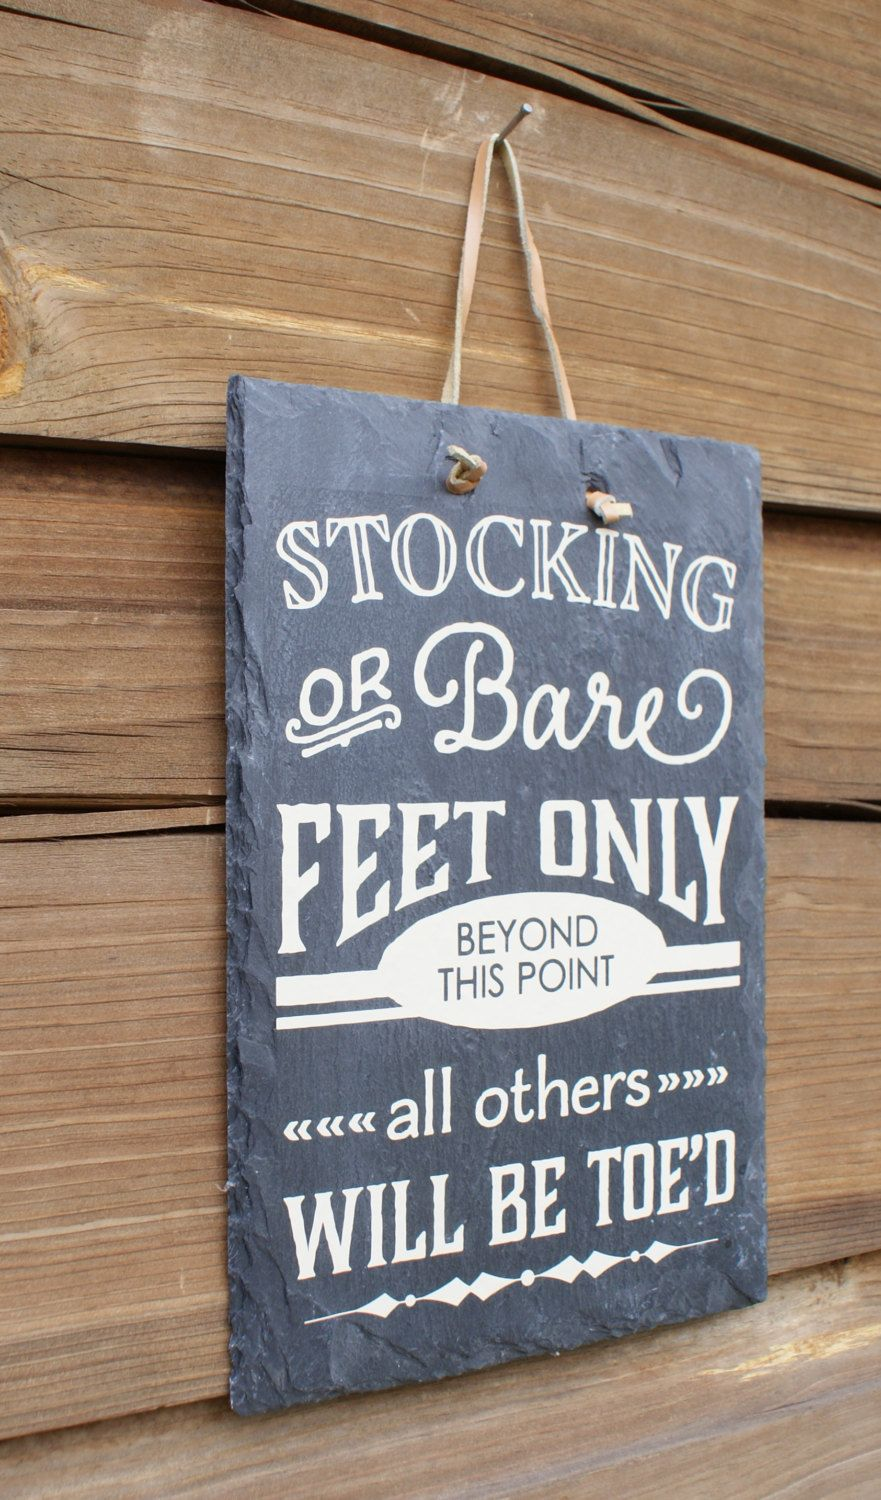 cd33ac40c9e7de No shoes sign. For the backdoor. STOCKING or BARE FEET Only - Remove Your  Shoes - Entryway Sign - Housewarming Gift - New Home Gift - Welcome Guests  - House ...